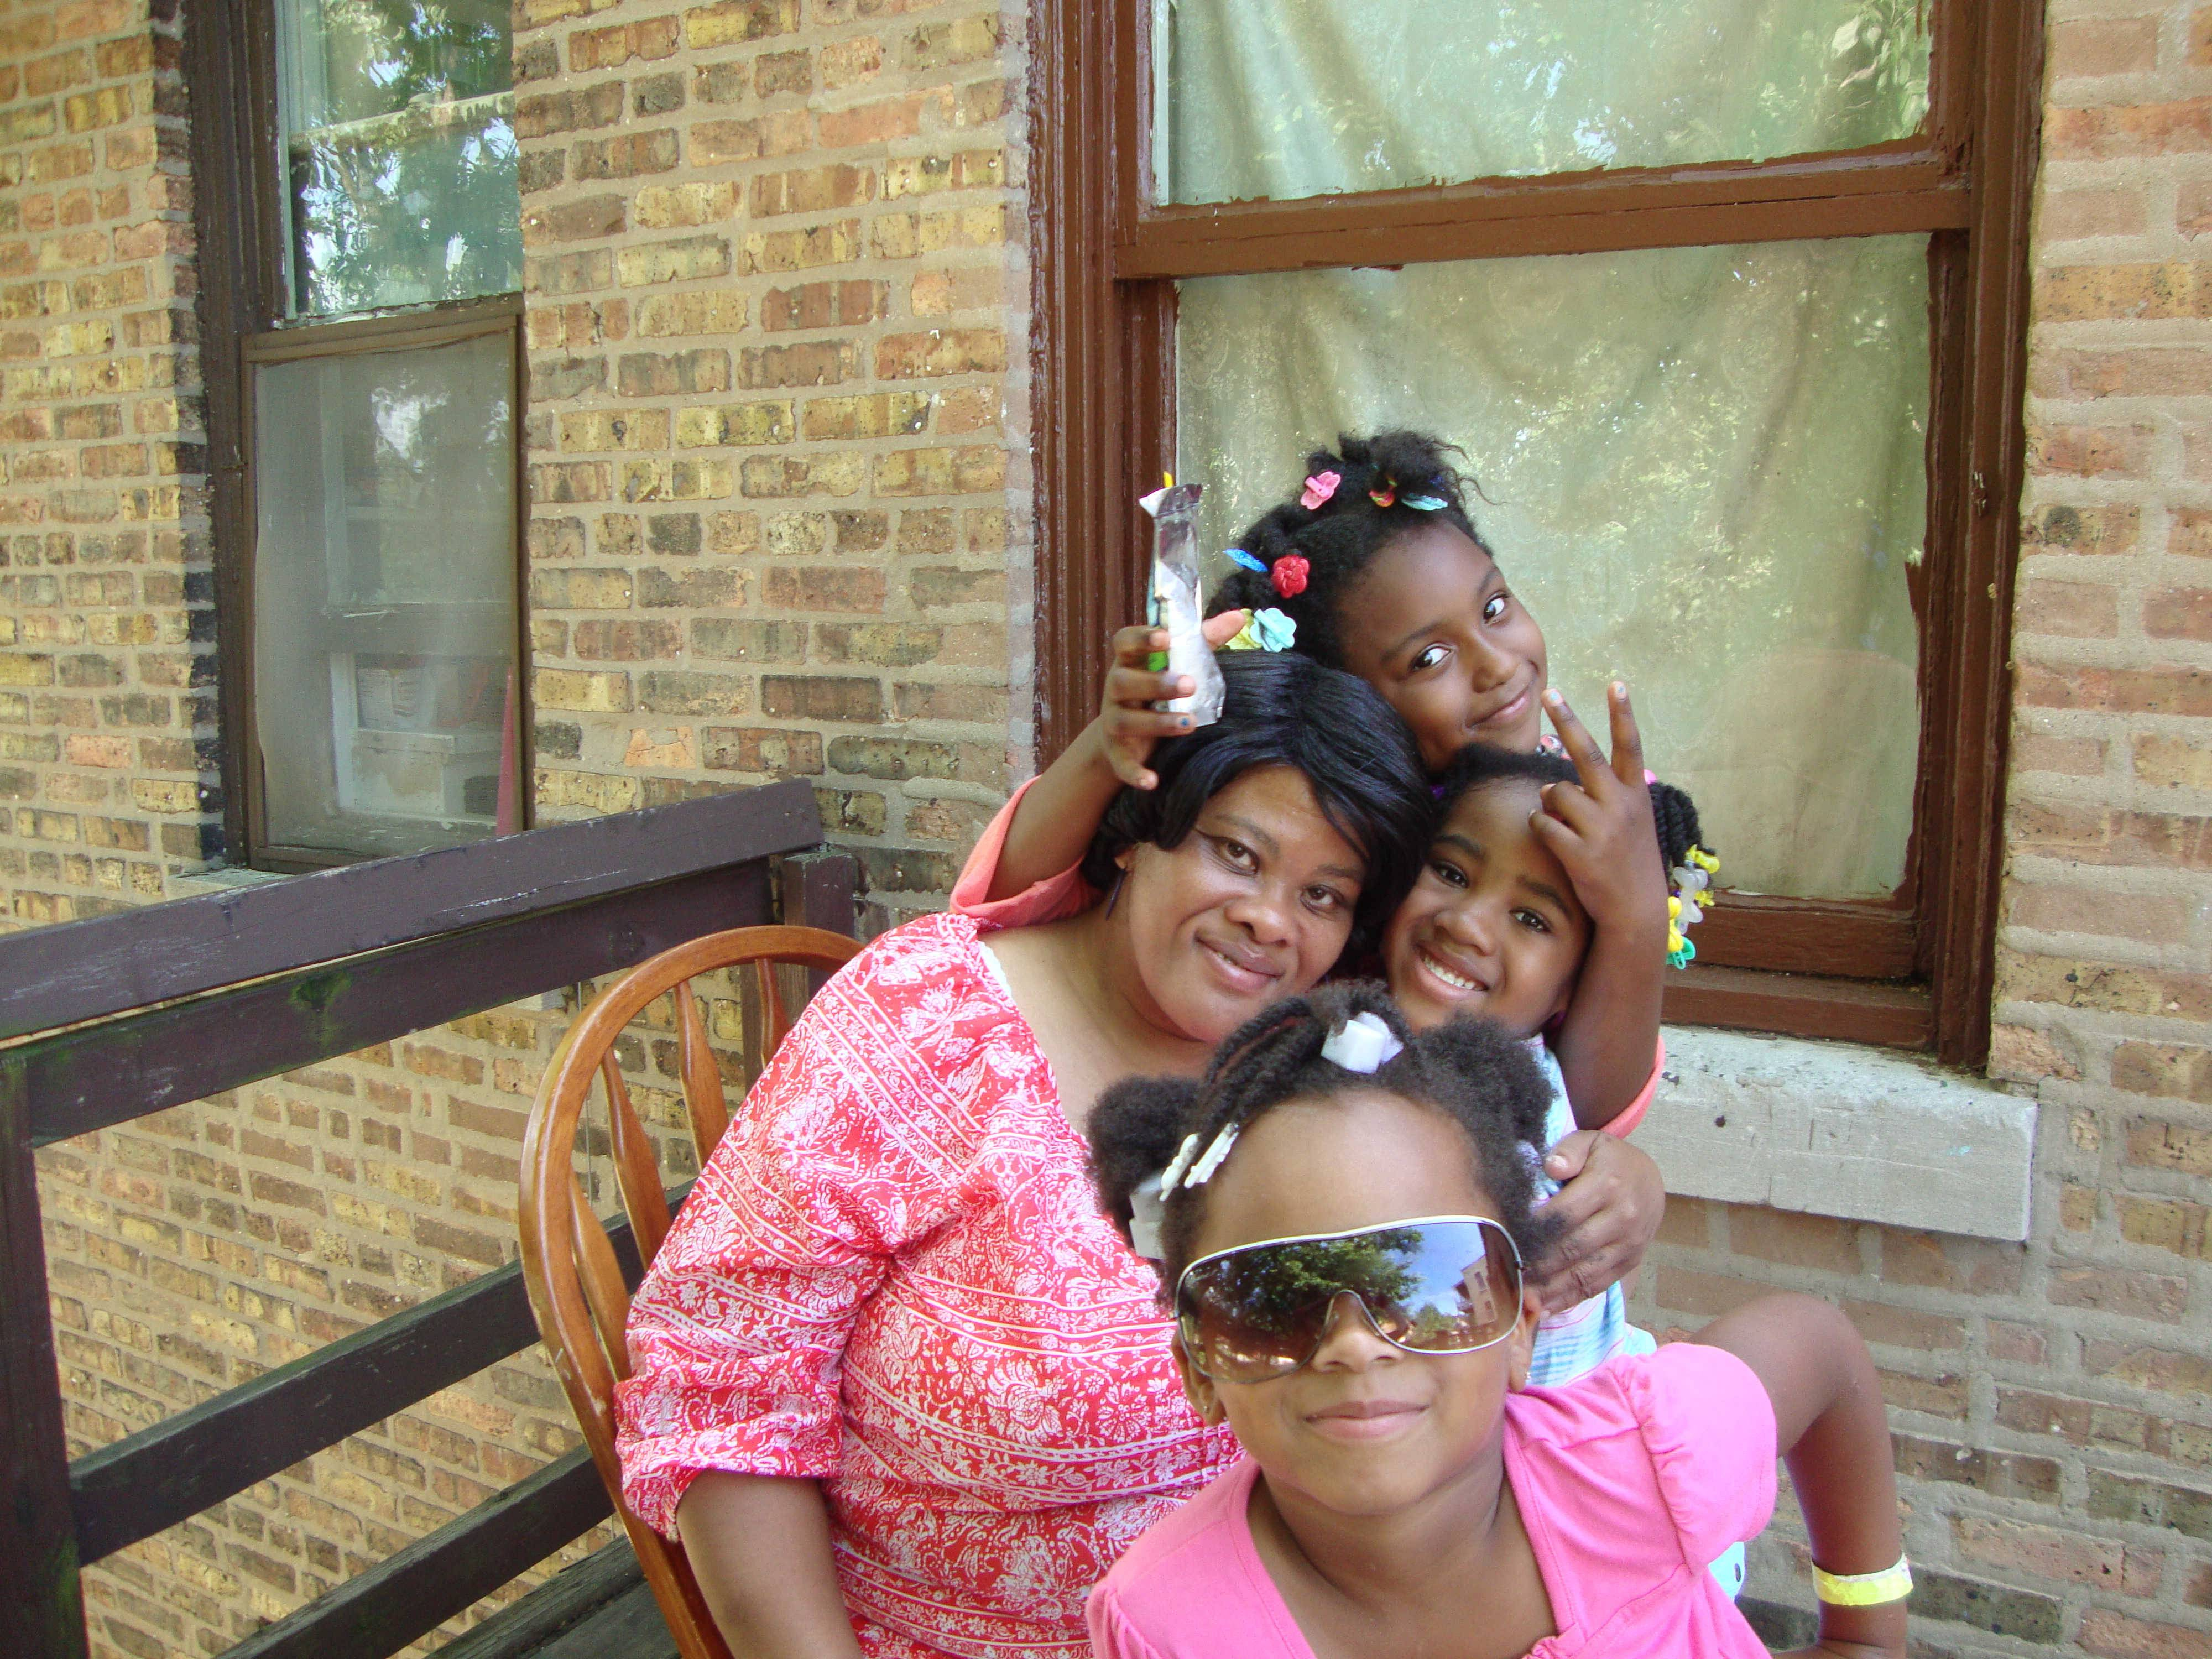 Elgin cabdriver Melba Farr, 56, who died June 8 after a crash on the tollway, is pictured with some of her grandchildren.